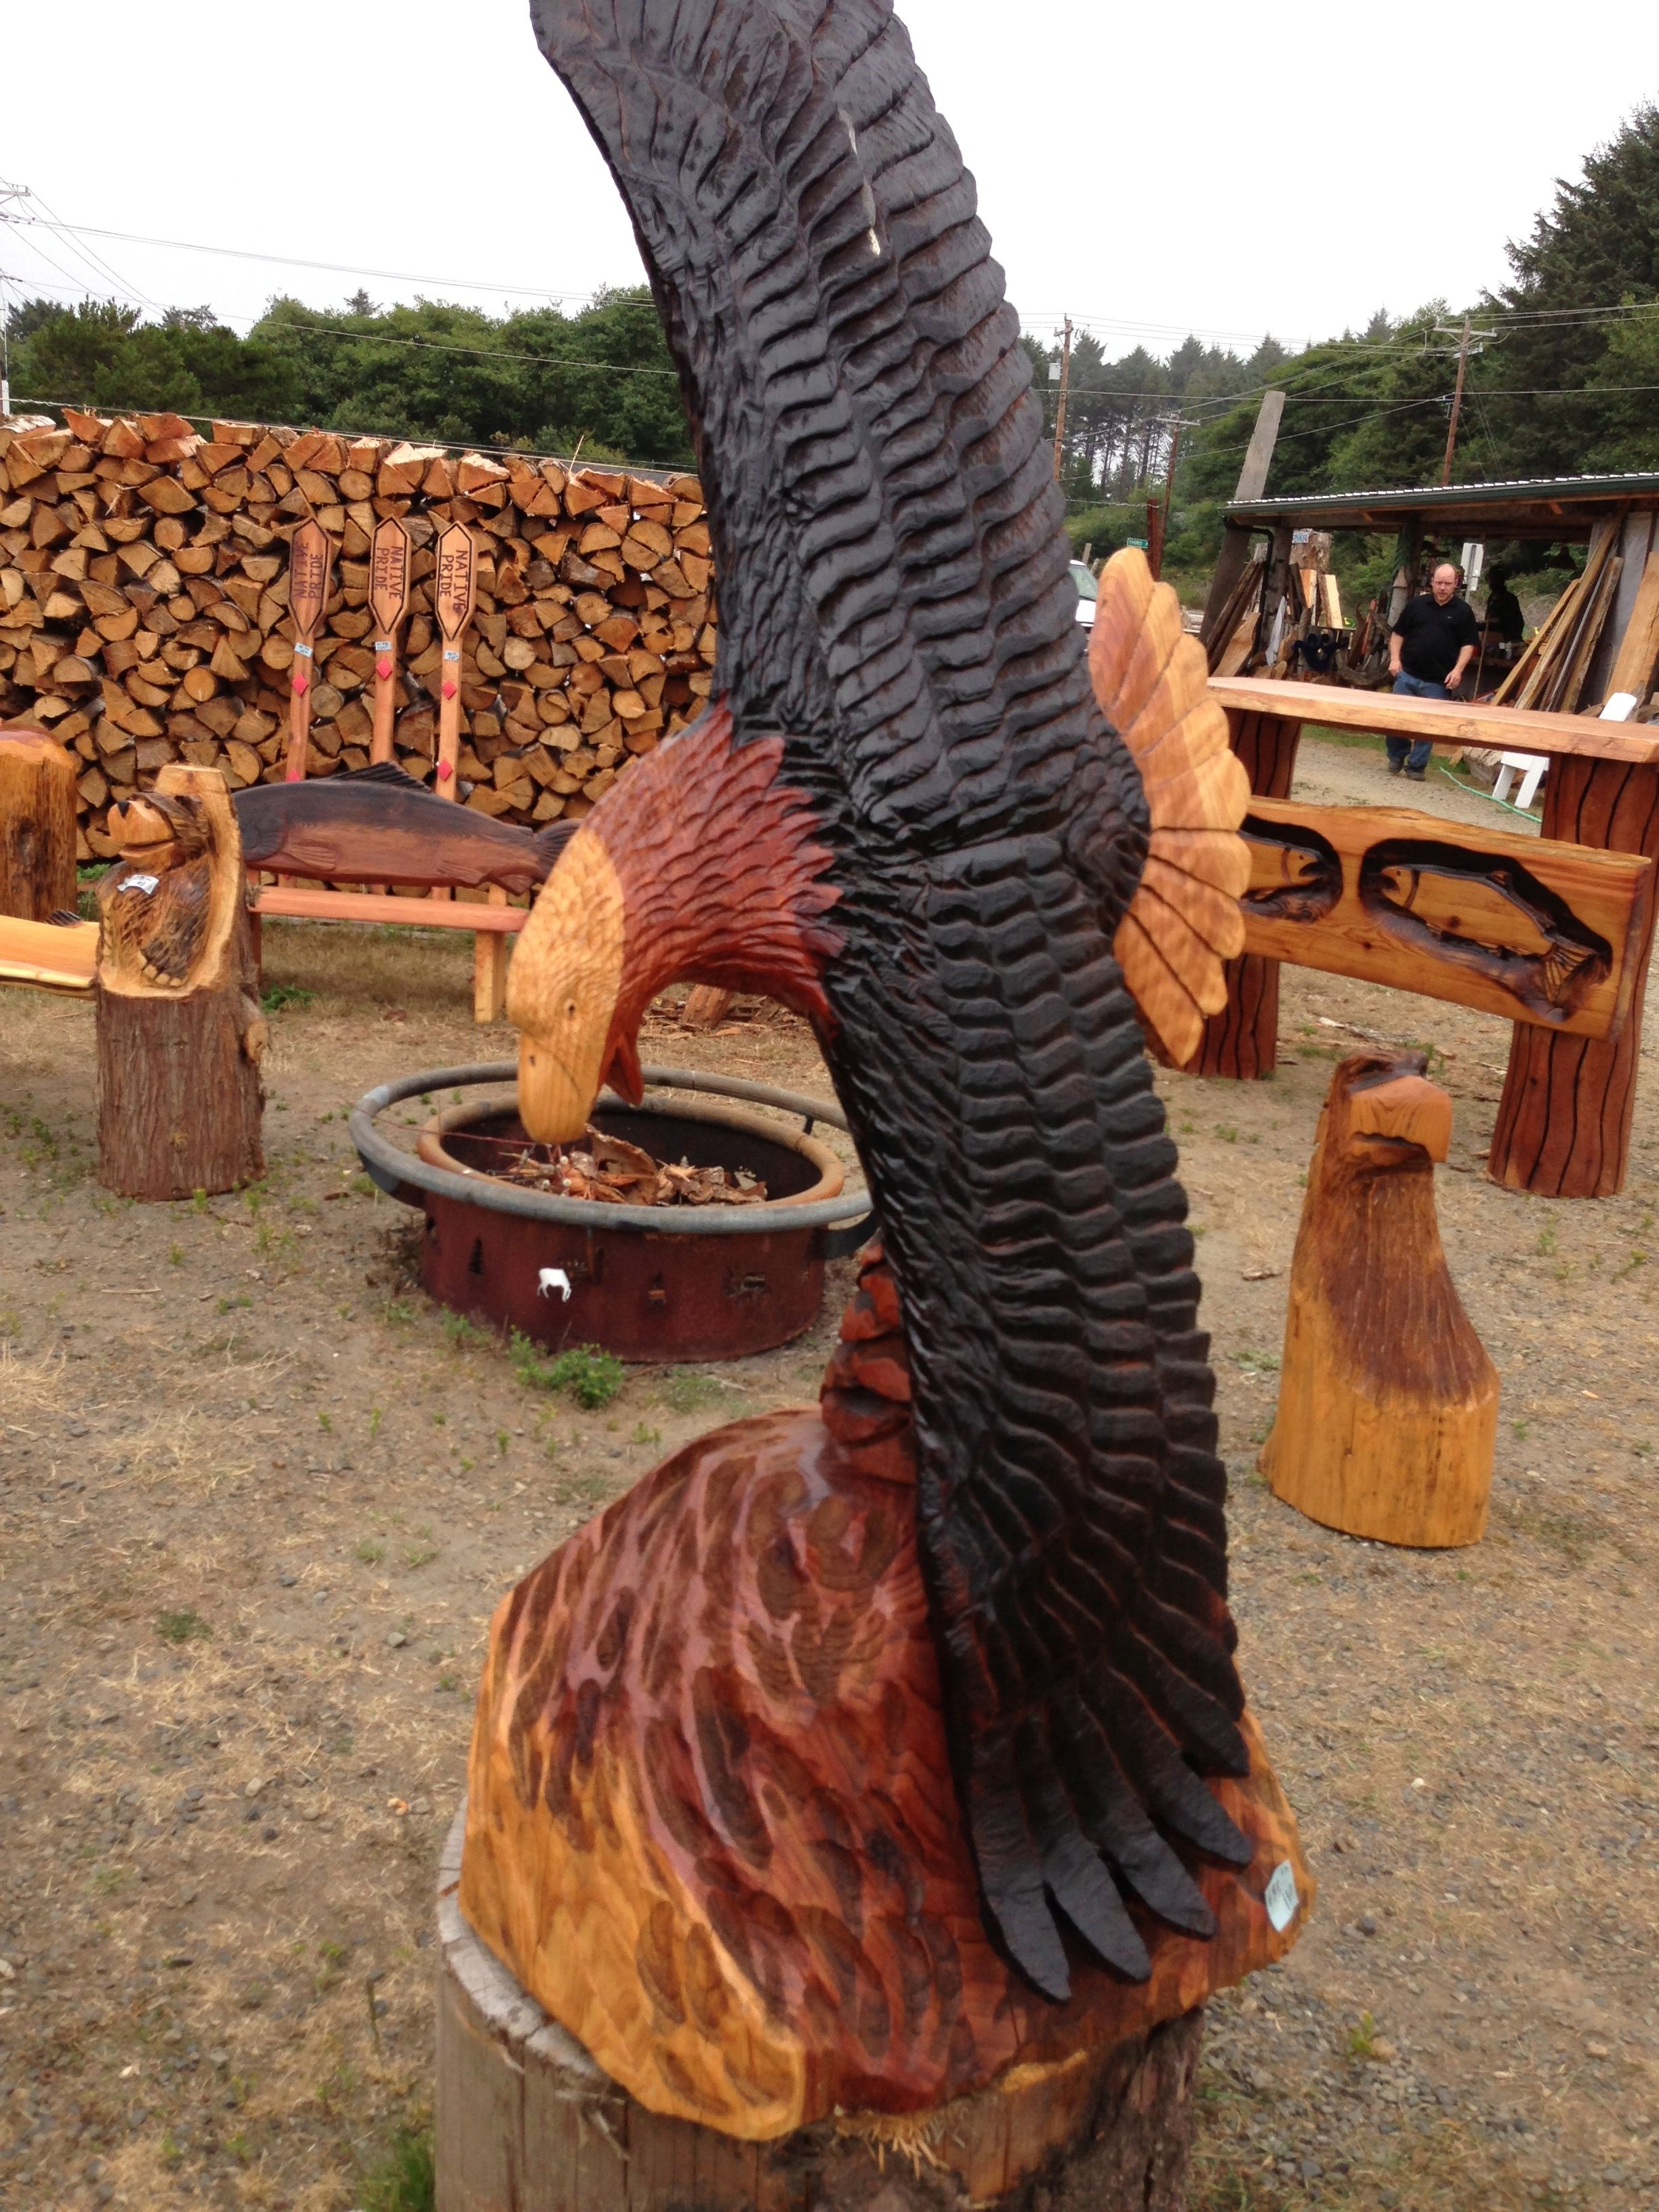 The bend in road chainsaw art and firewood stand